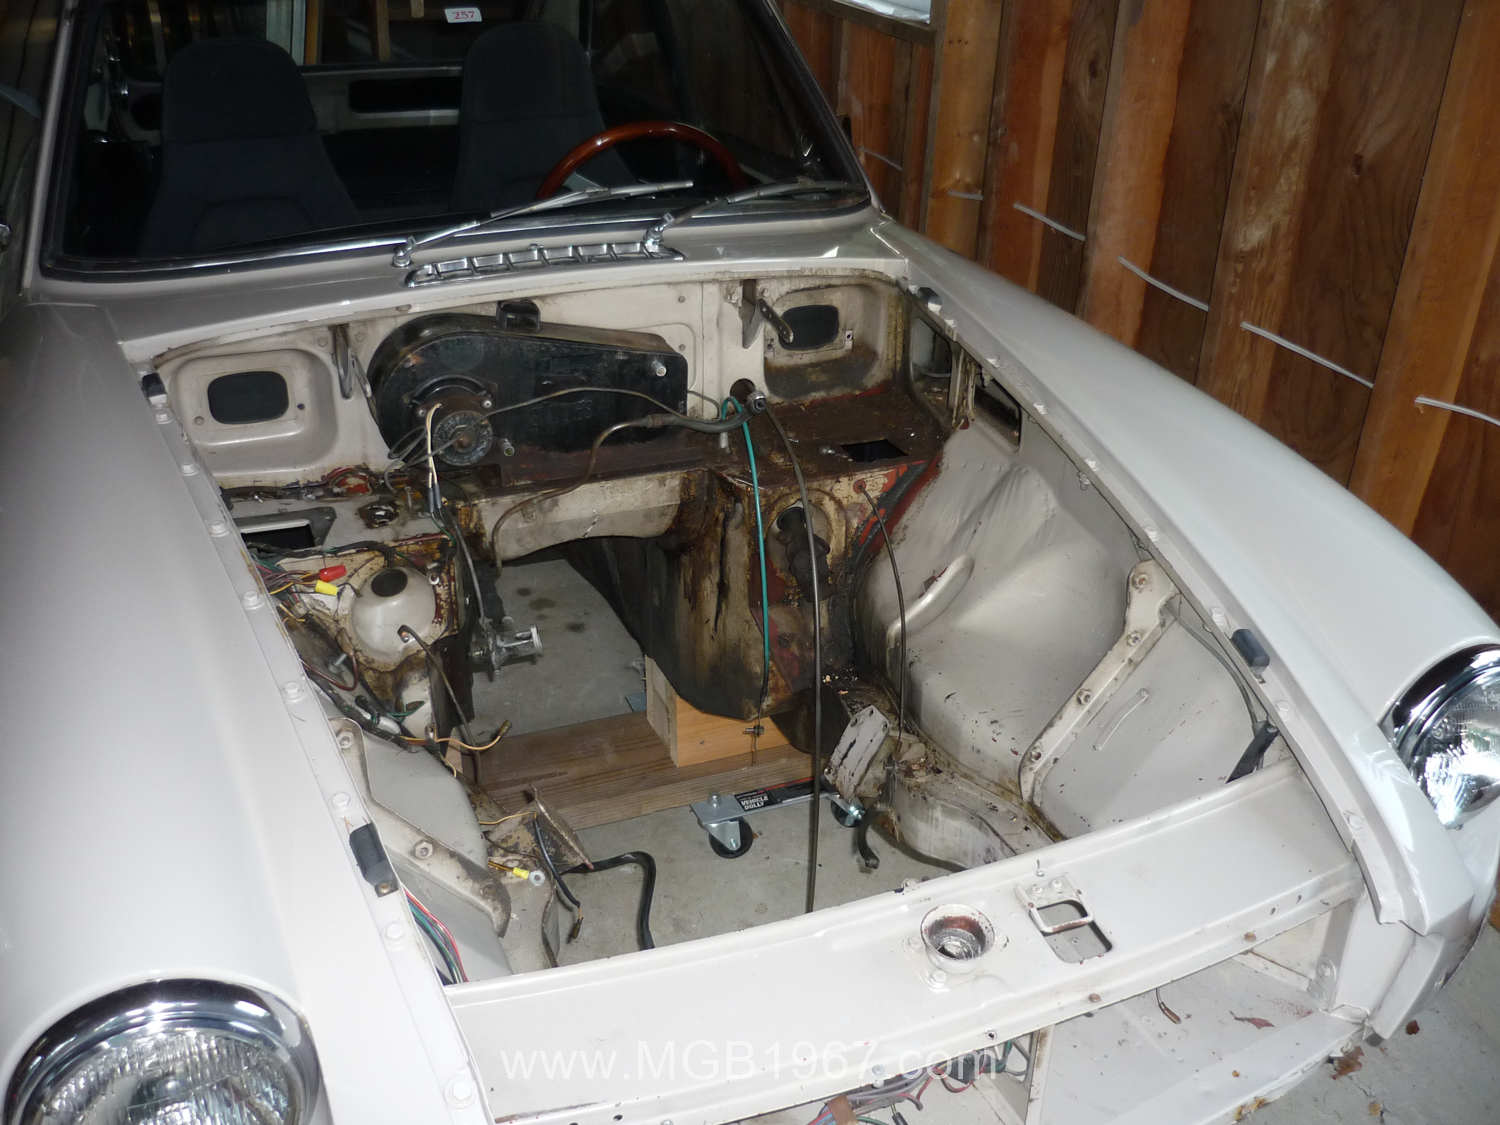 Mgb Engine Diagram Wiring Library 1978 Schematic Captivating Overdrive 2000 Lincoln Ls Saab